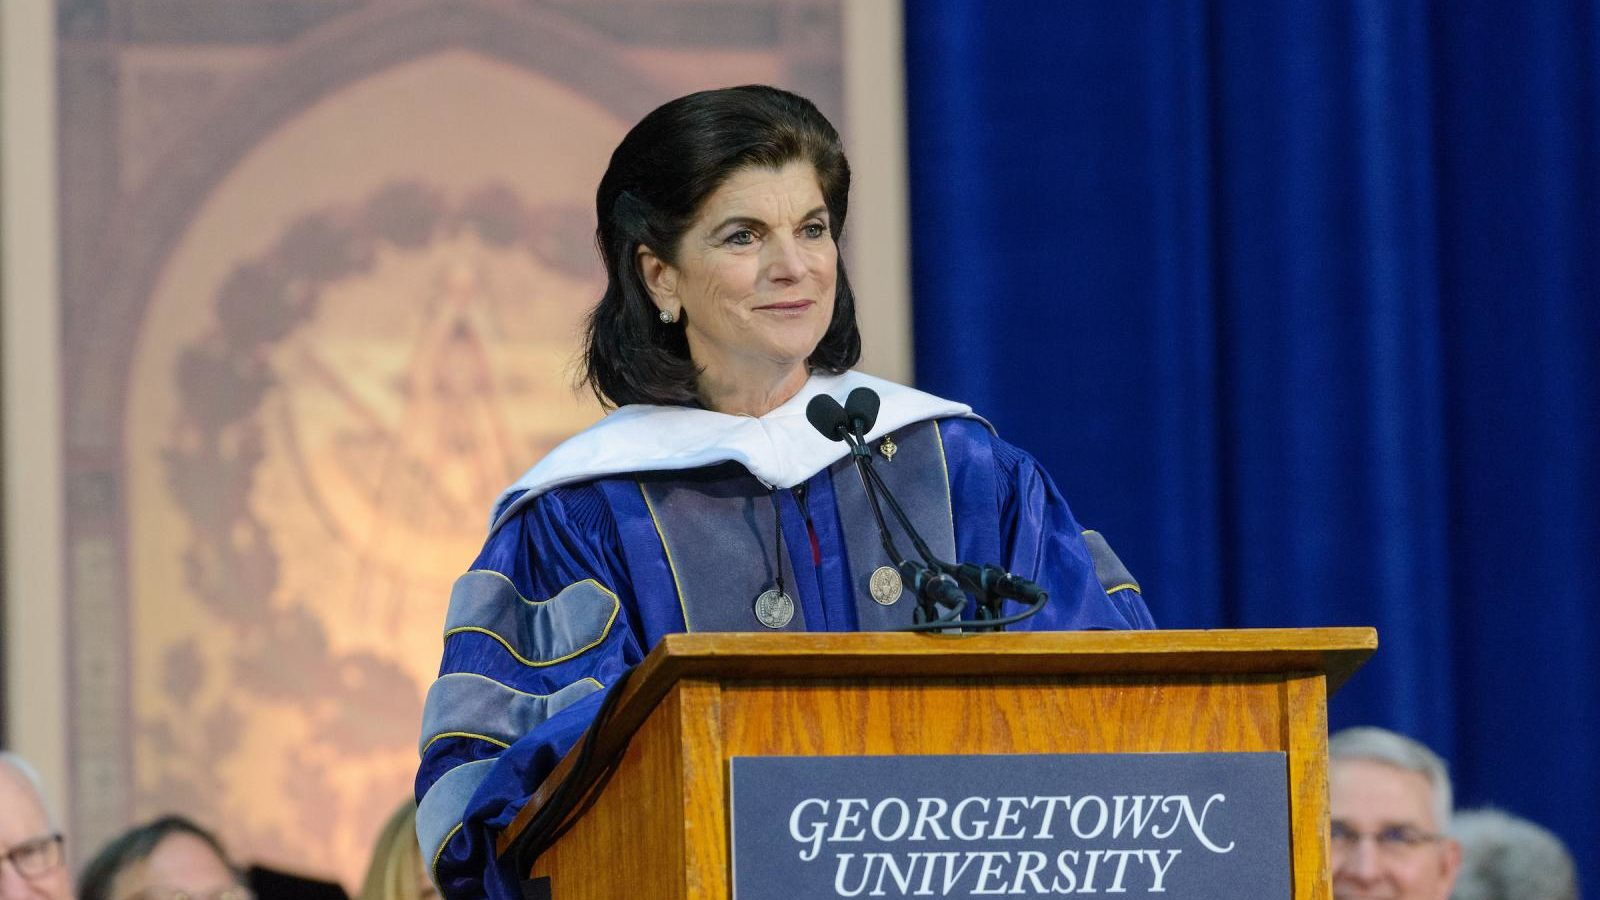 Luci Baines Johnson (NHS'69, H'18) was the 2018 commencement speaker for the Georgetown University School of Nursing and Health Studies.